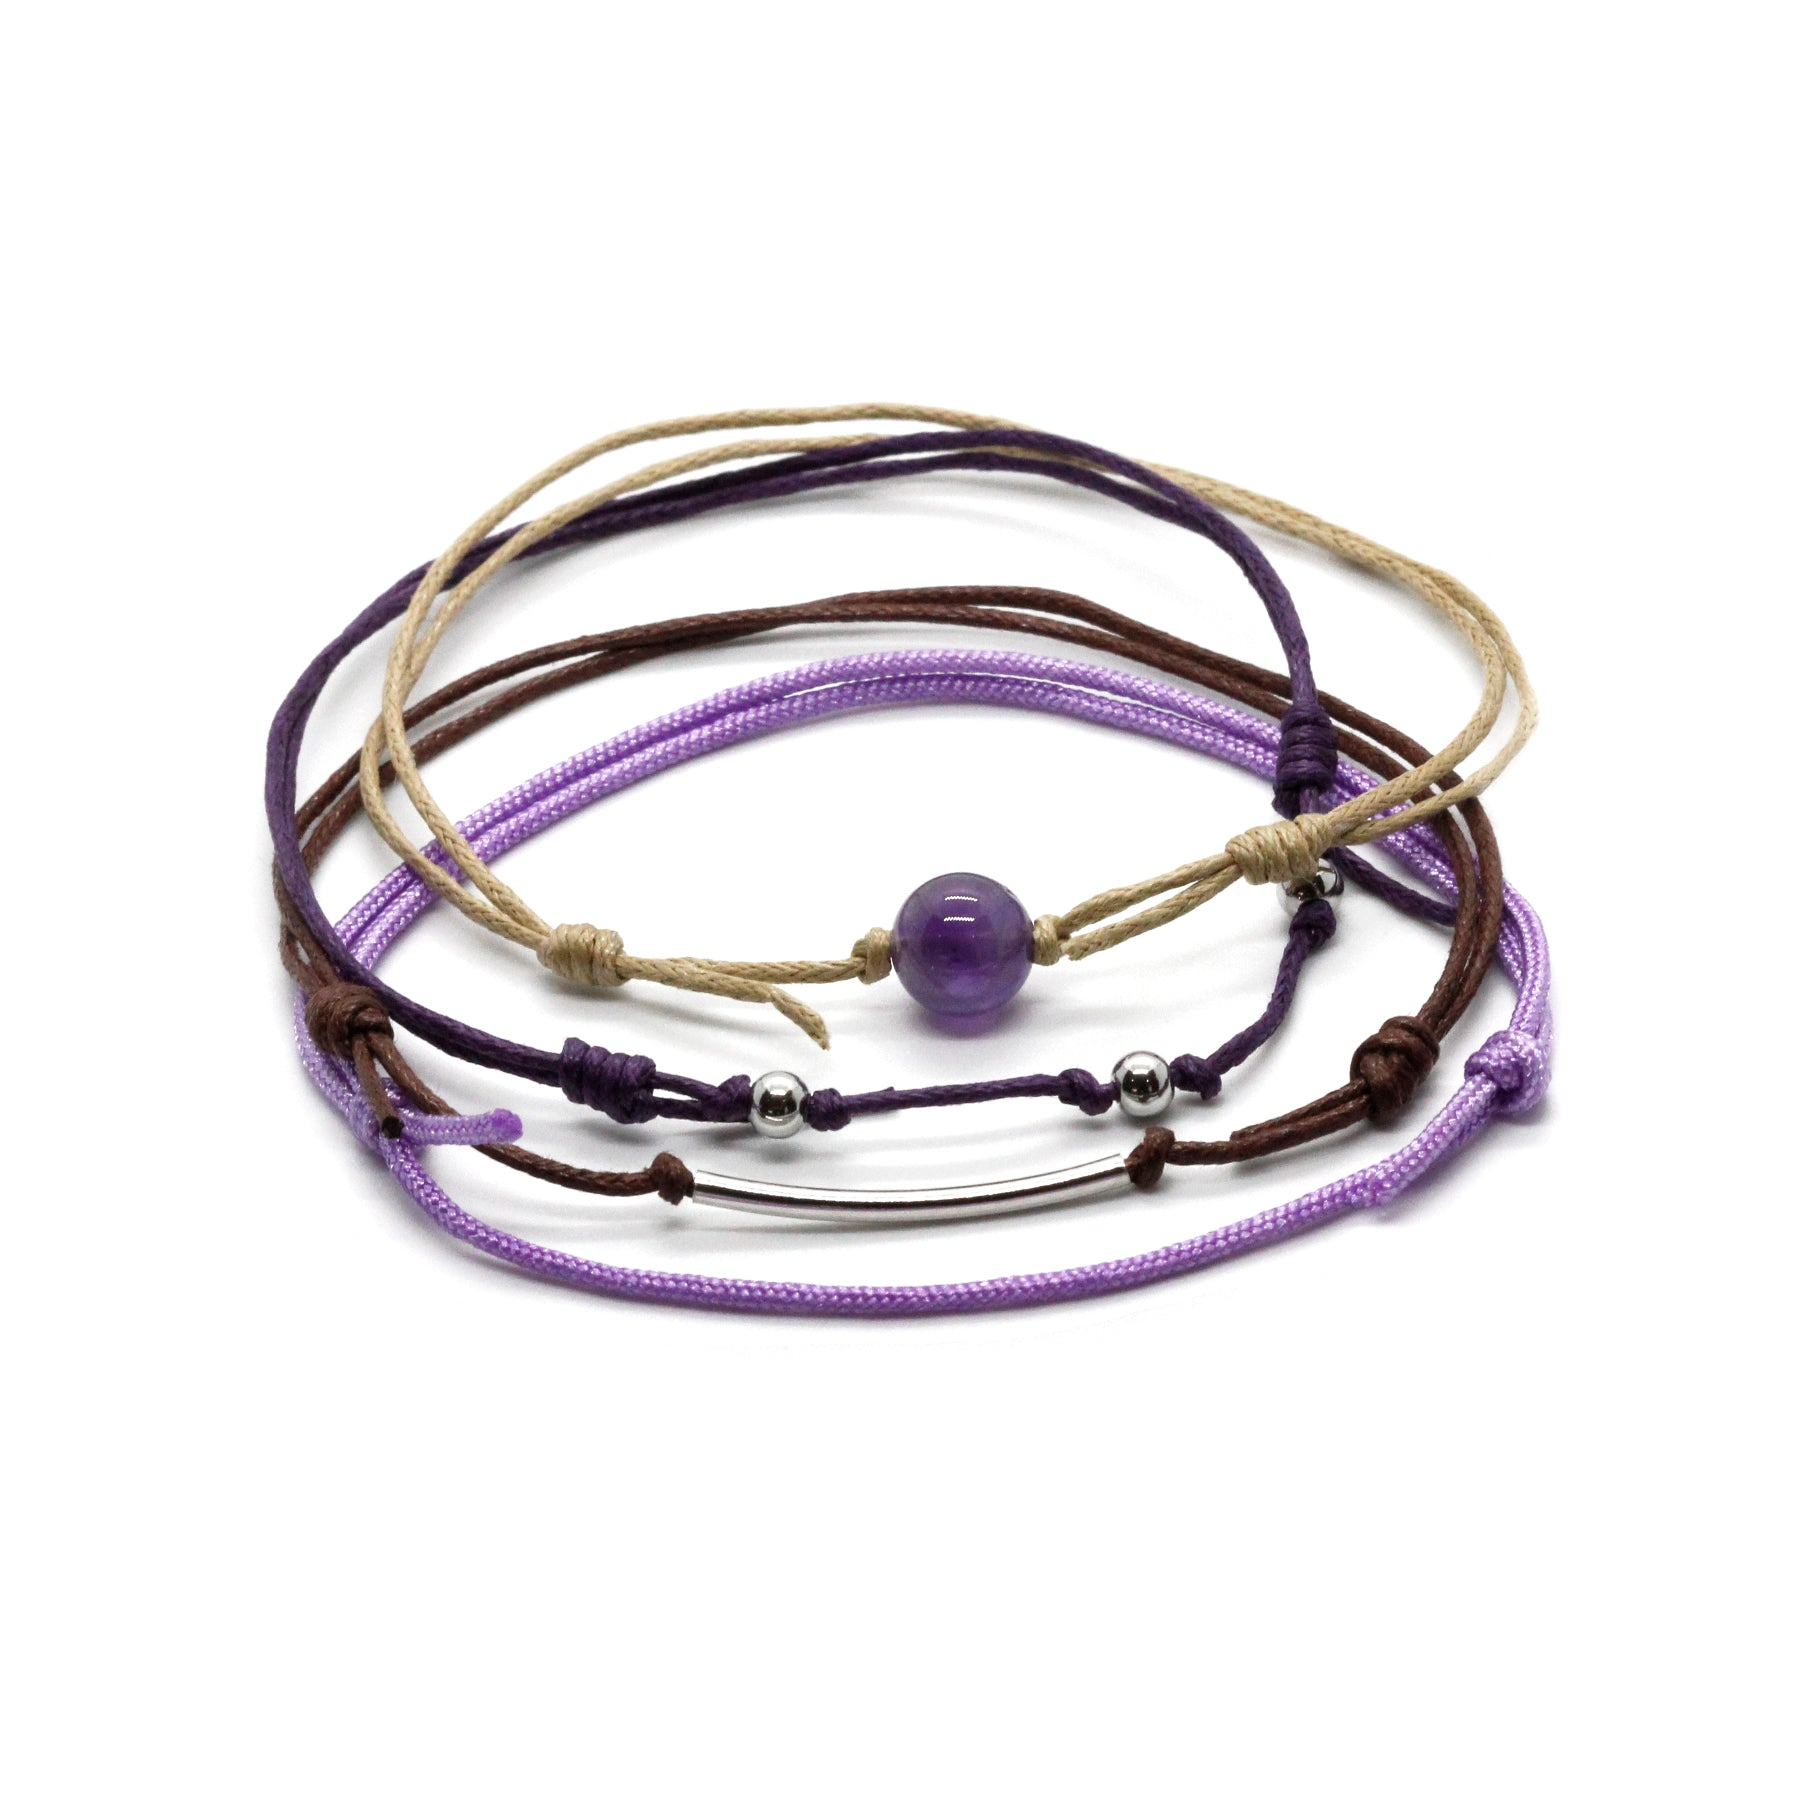 Amethyst Gemstone Anklet - 4 Piece Set | O Yeah Gifts!